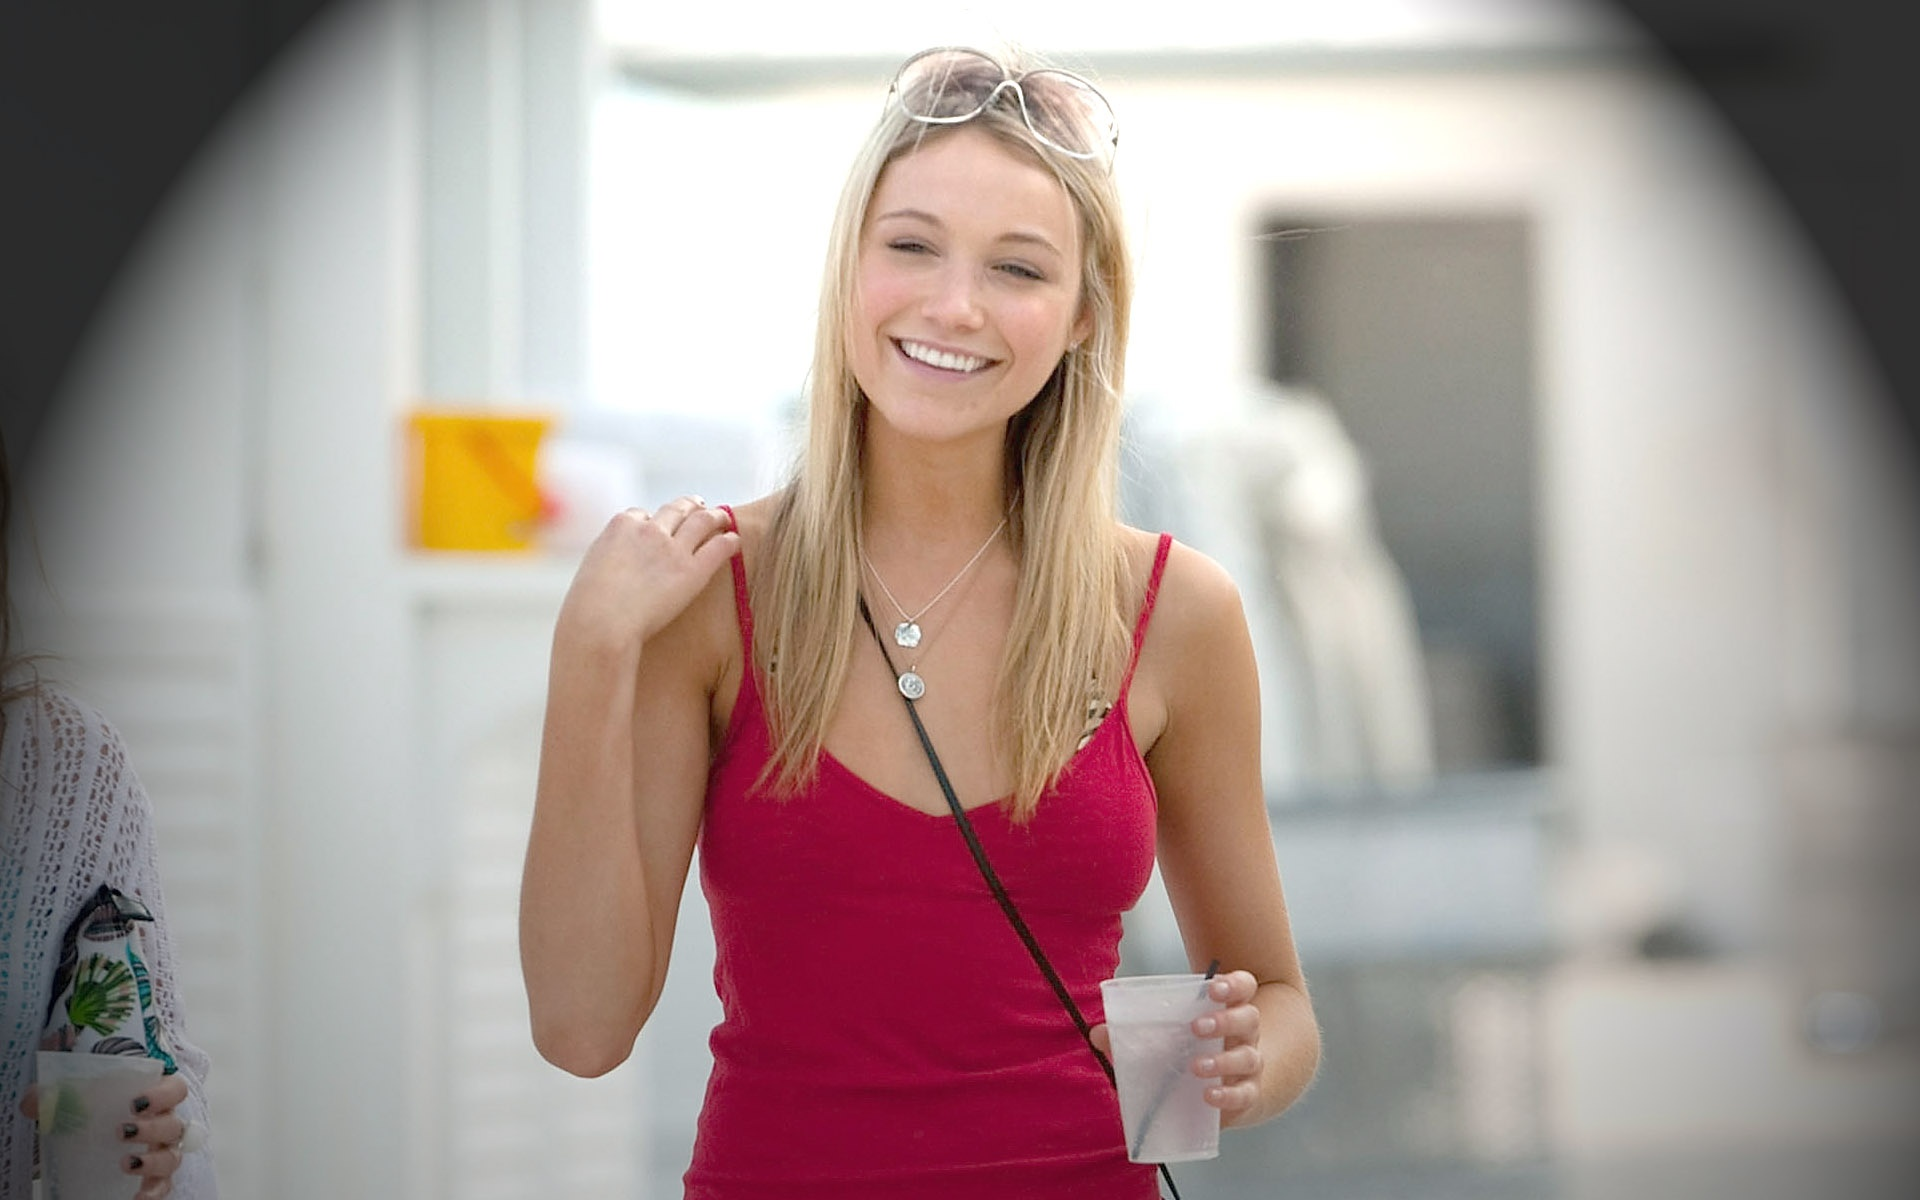 desktop katrina bowden beautiful smile look background mobile pictures free hd